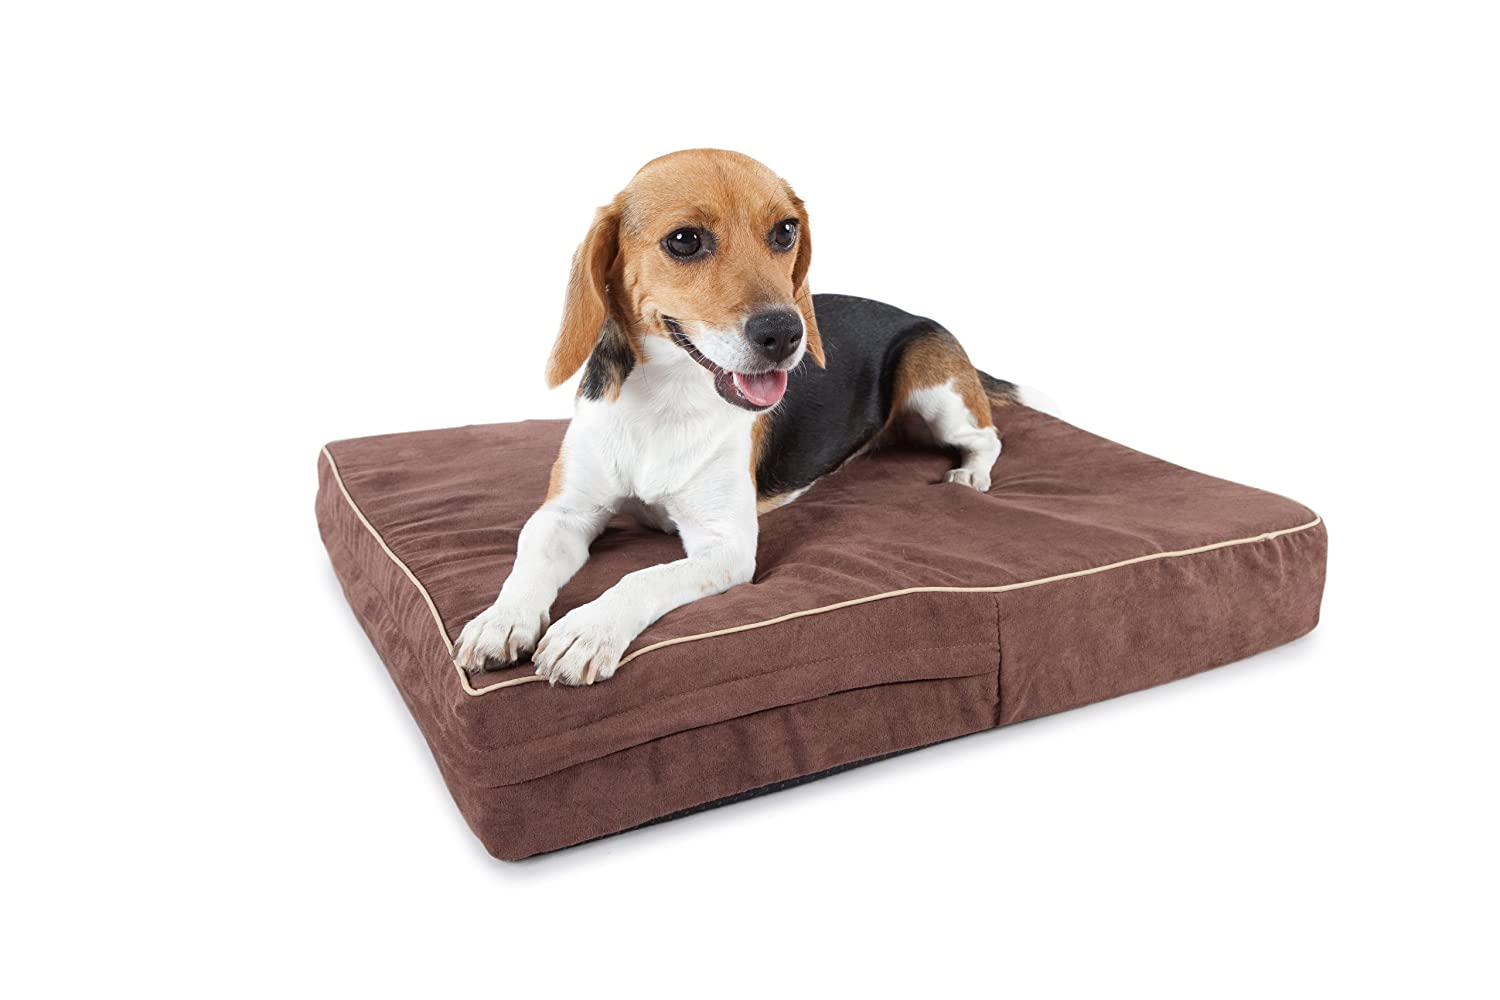 Extra large orthopedic dog beds best price - Amazon Com Orthopedic 4 Pound Memory Foam Dog Beds Washable Suede 30 Day Money Back Guarantee 1 Best Rated Pet Beds Brown 40 X35 X4 L Pet Bed